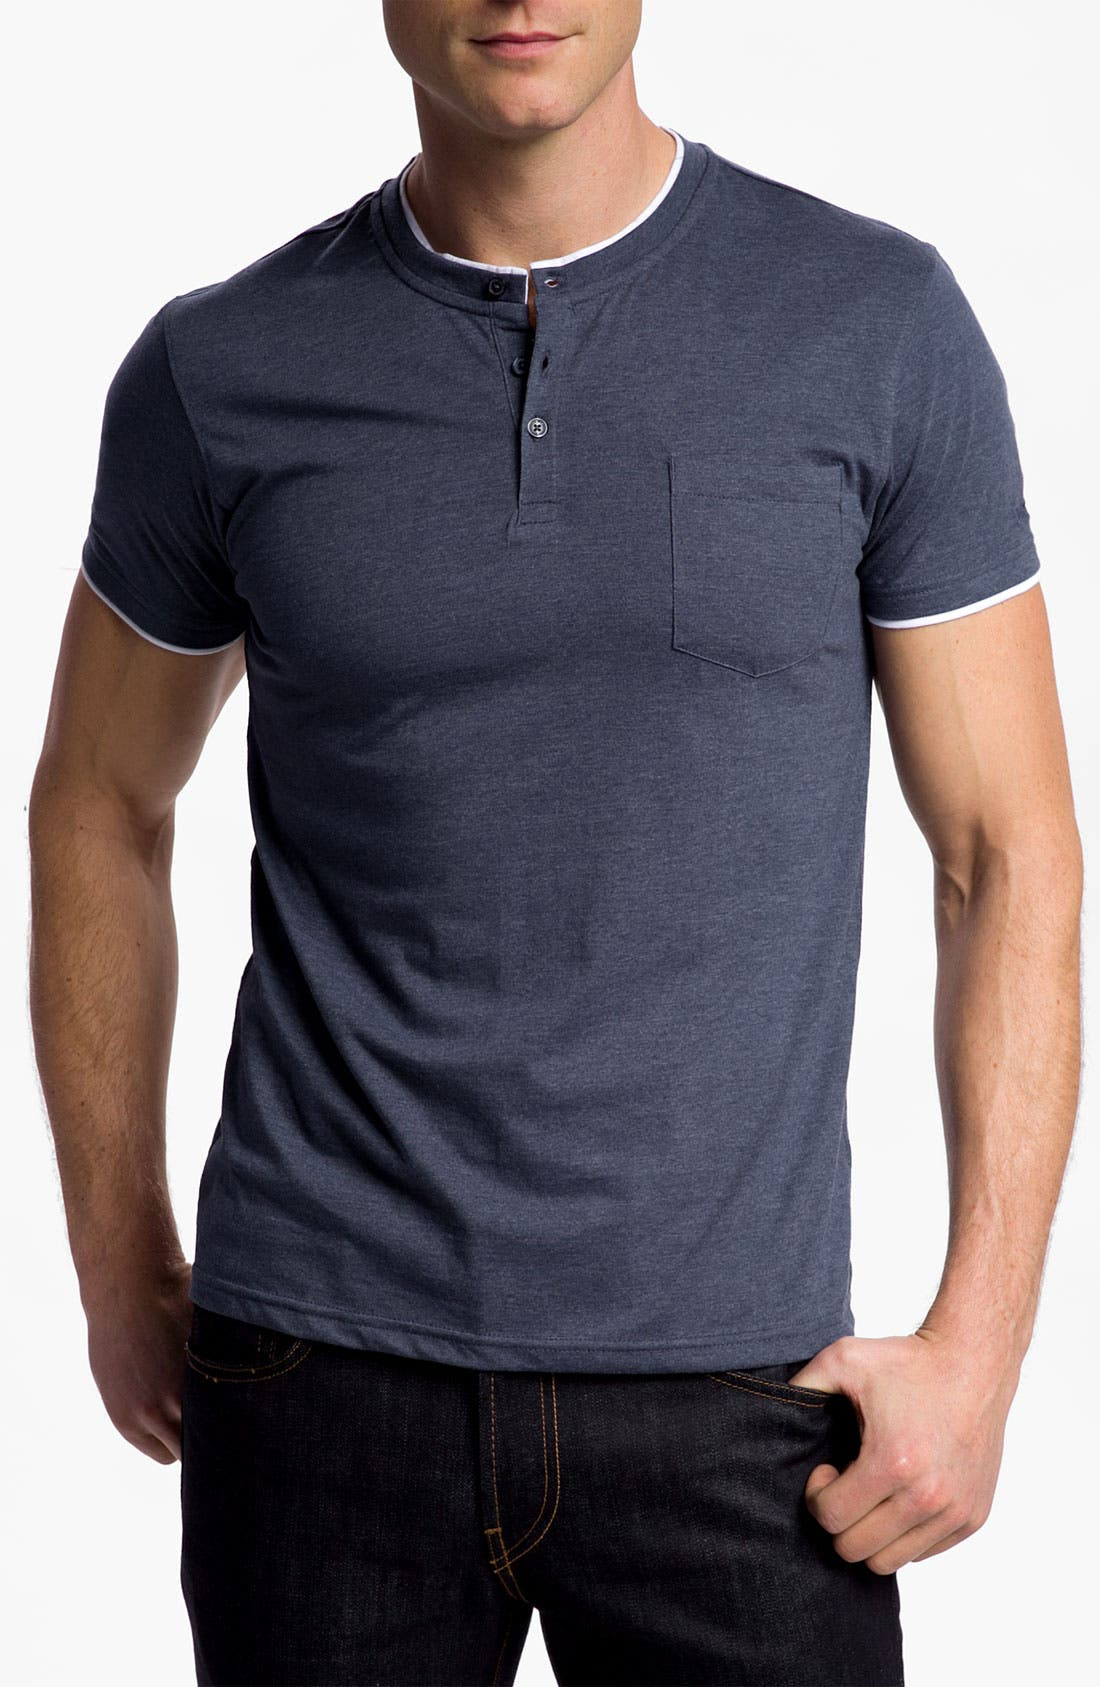 Alternate Image 1 Selected - Ben Sherman Short Sleeve Henley